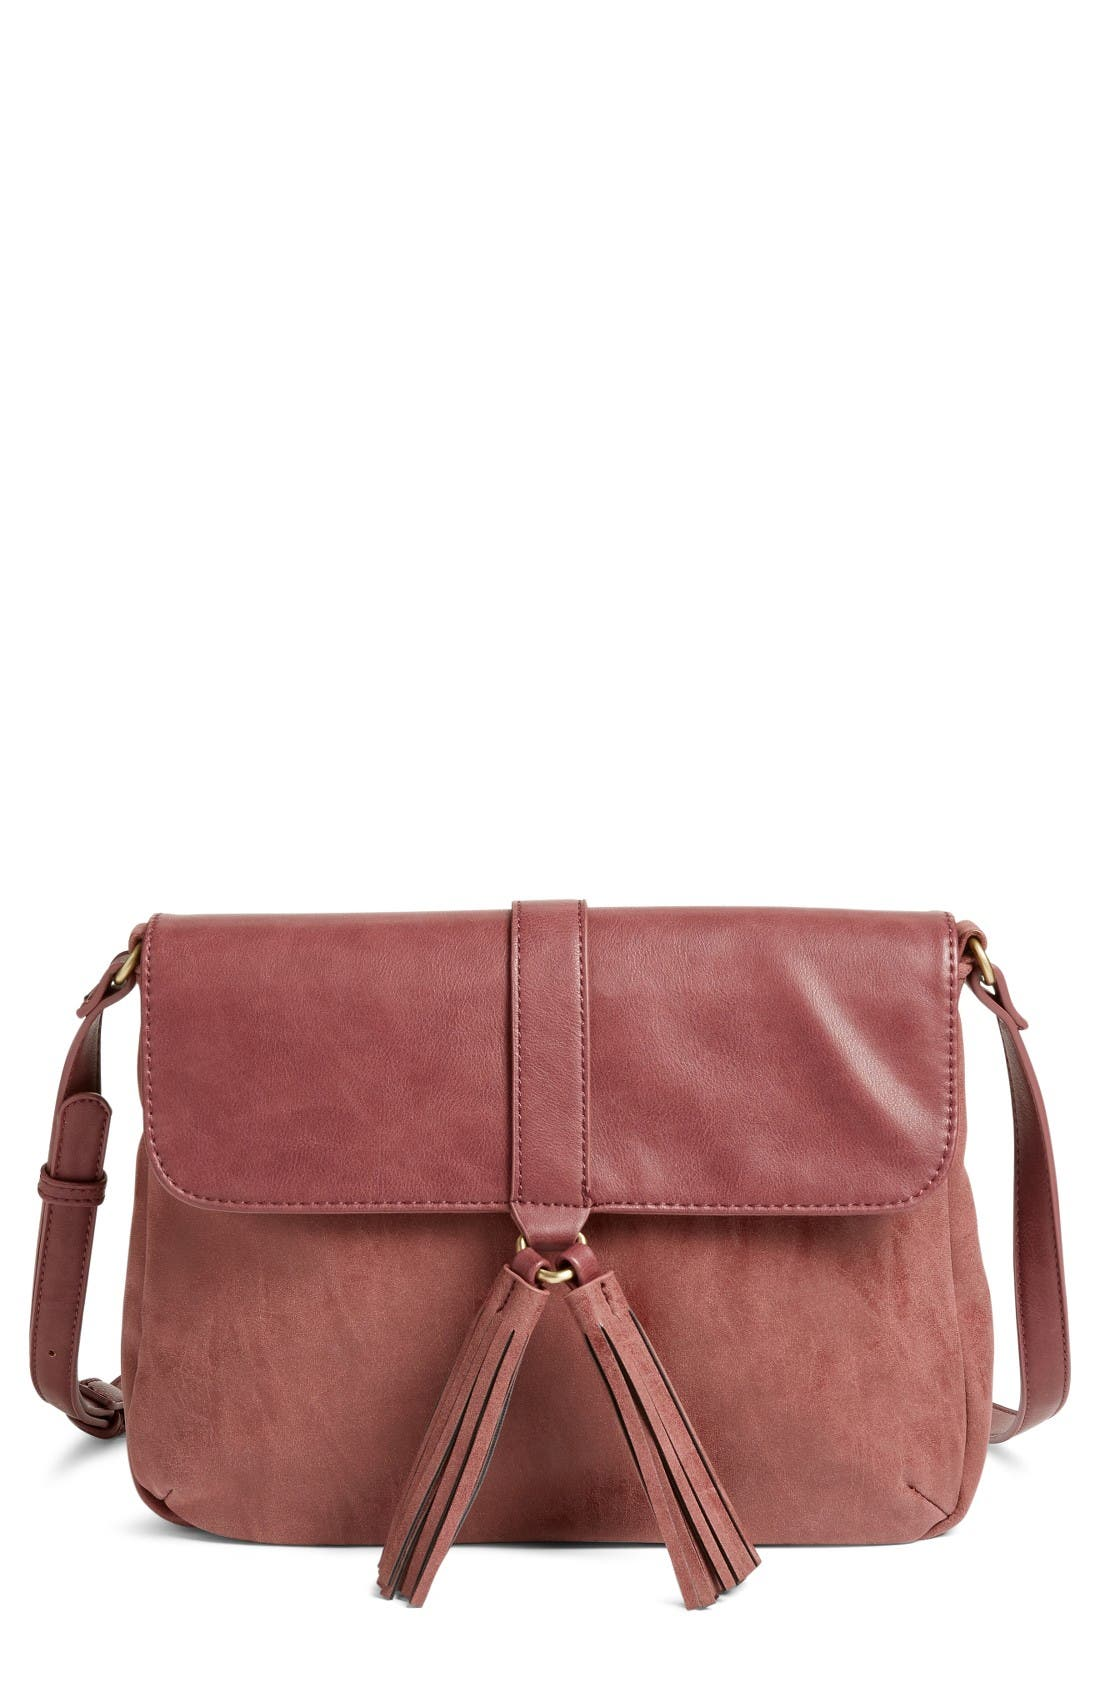 Main Image - Emperia Saydie Tassel Faux Leather Crossbody Bag (Special Purchase)